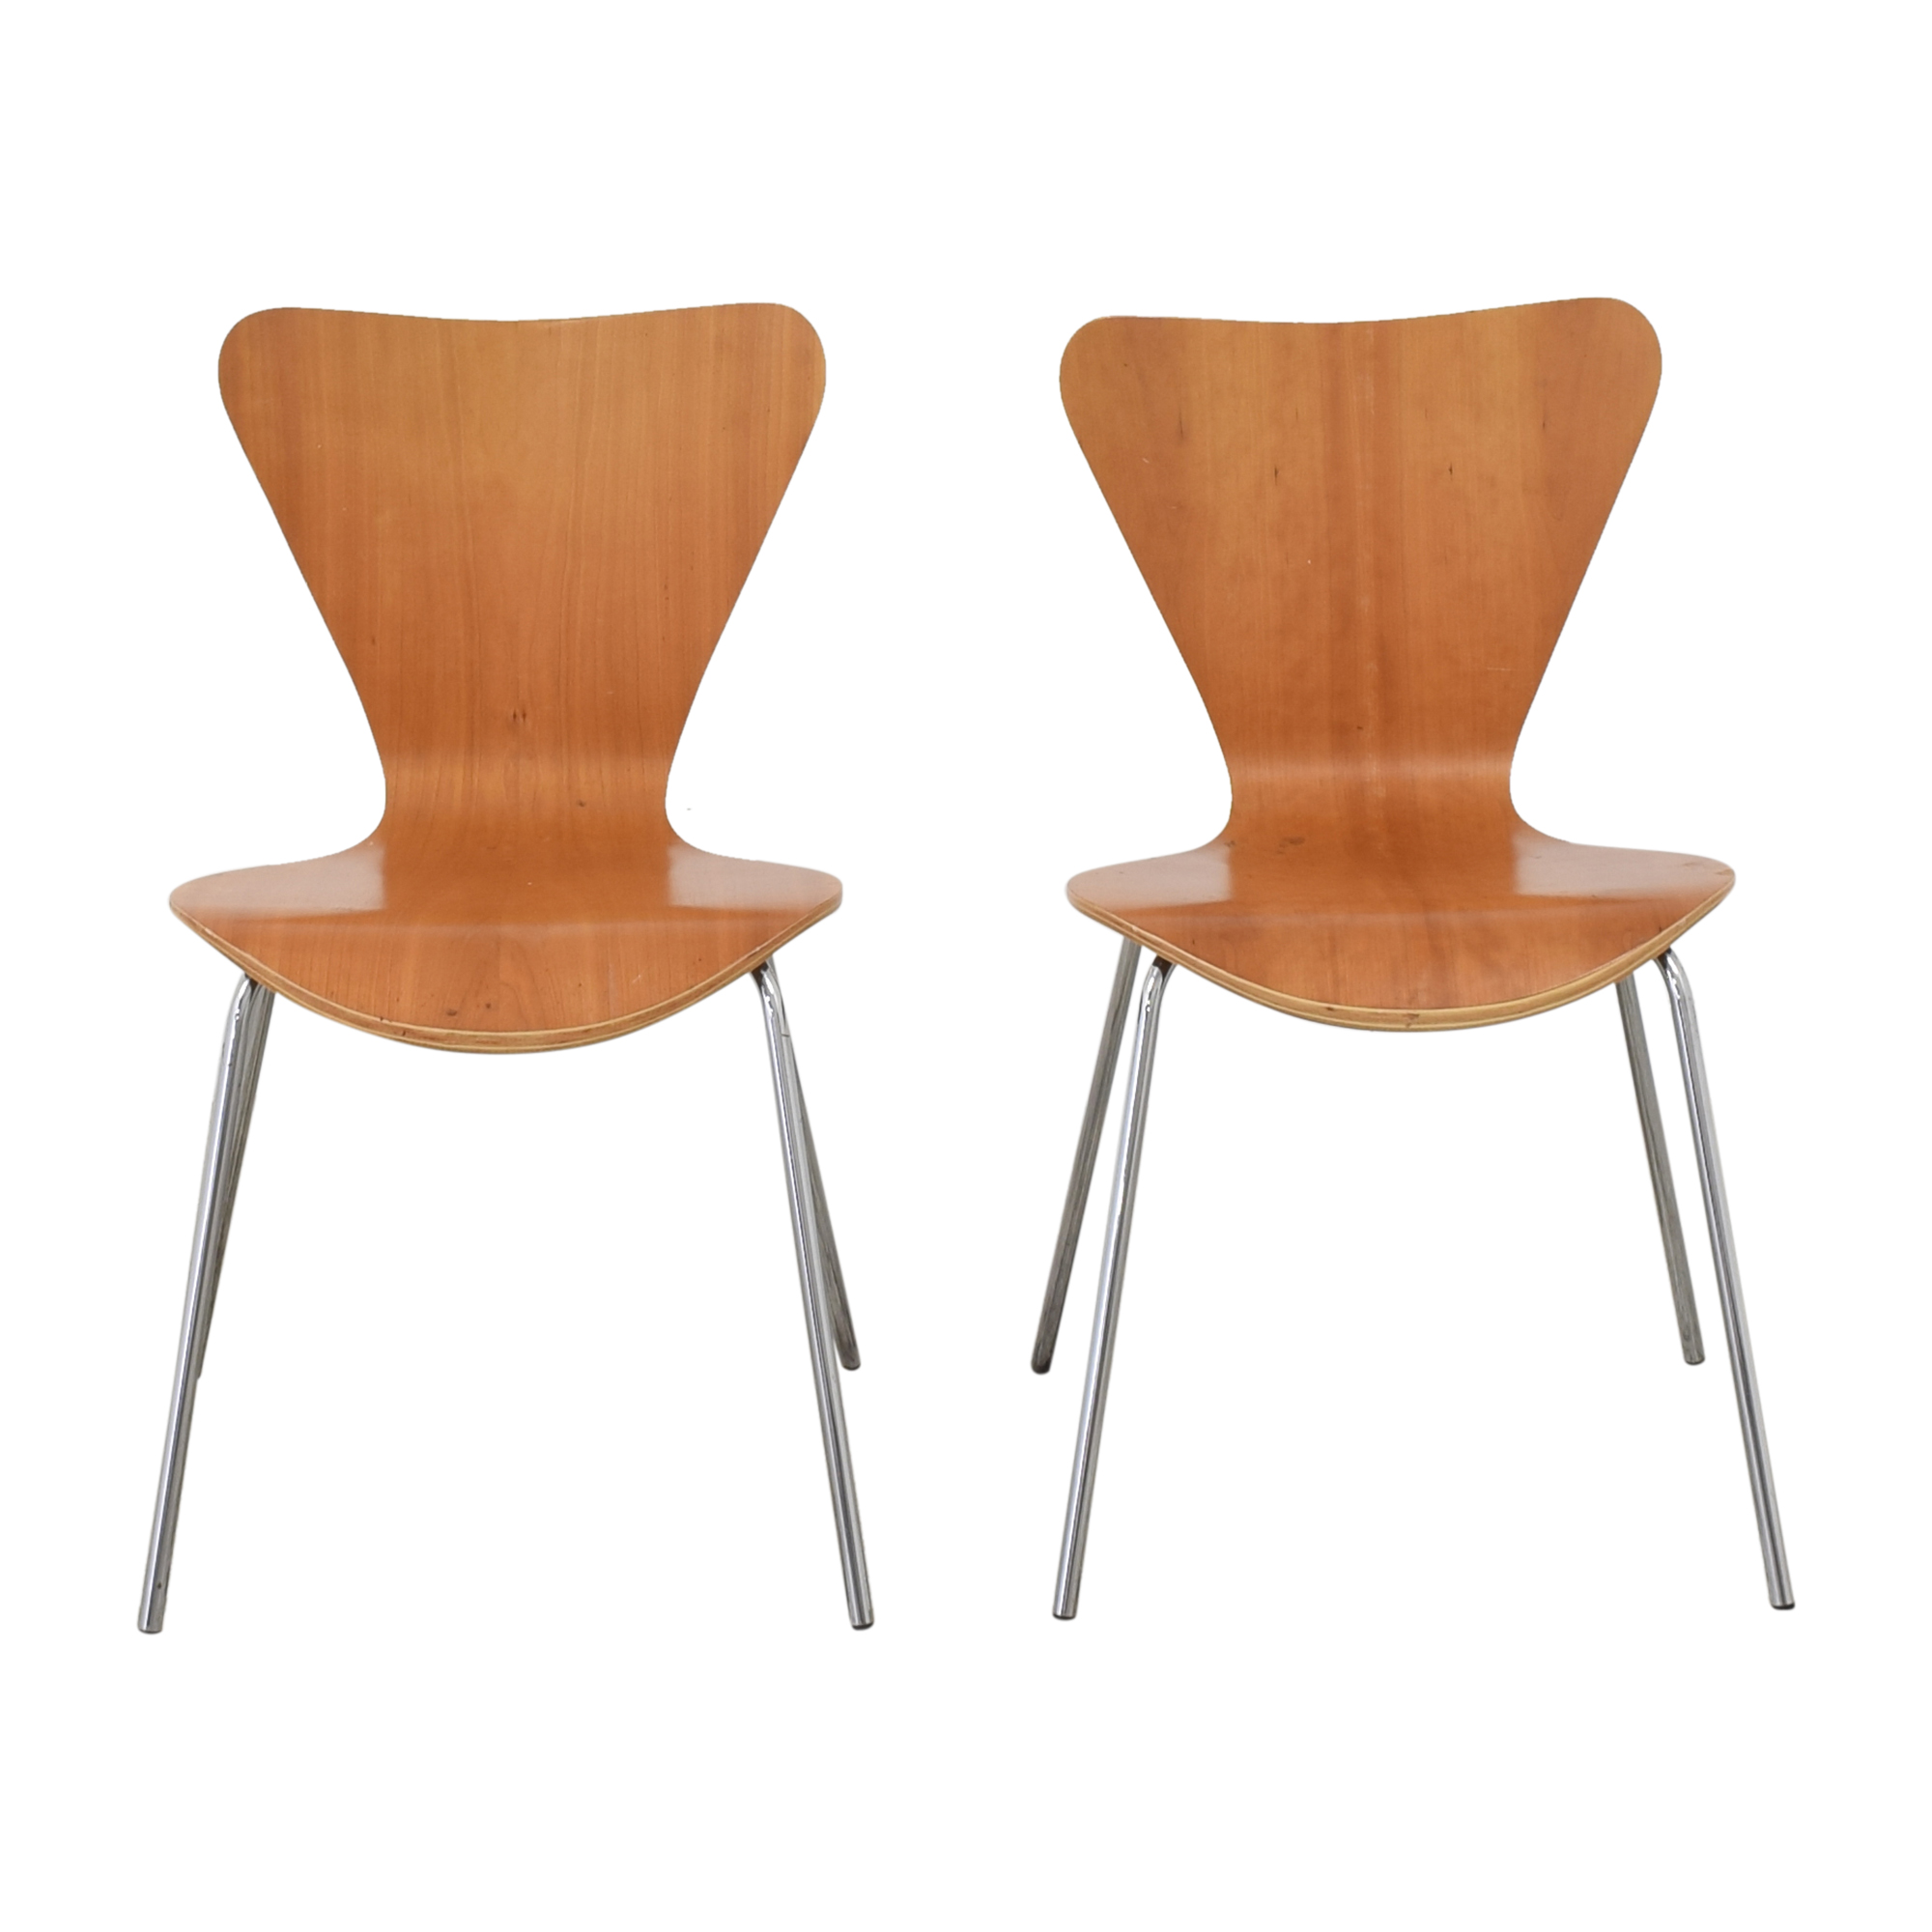 Room & Board Jake Dining Chairs / Dining Chairs